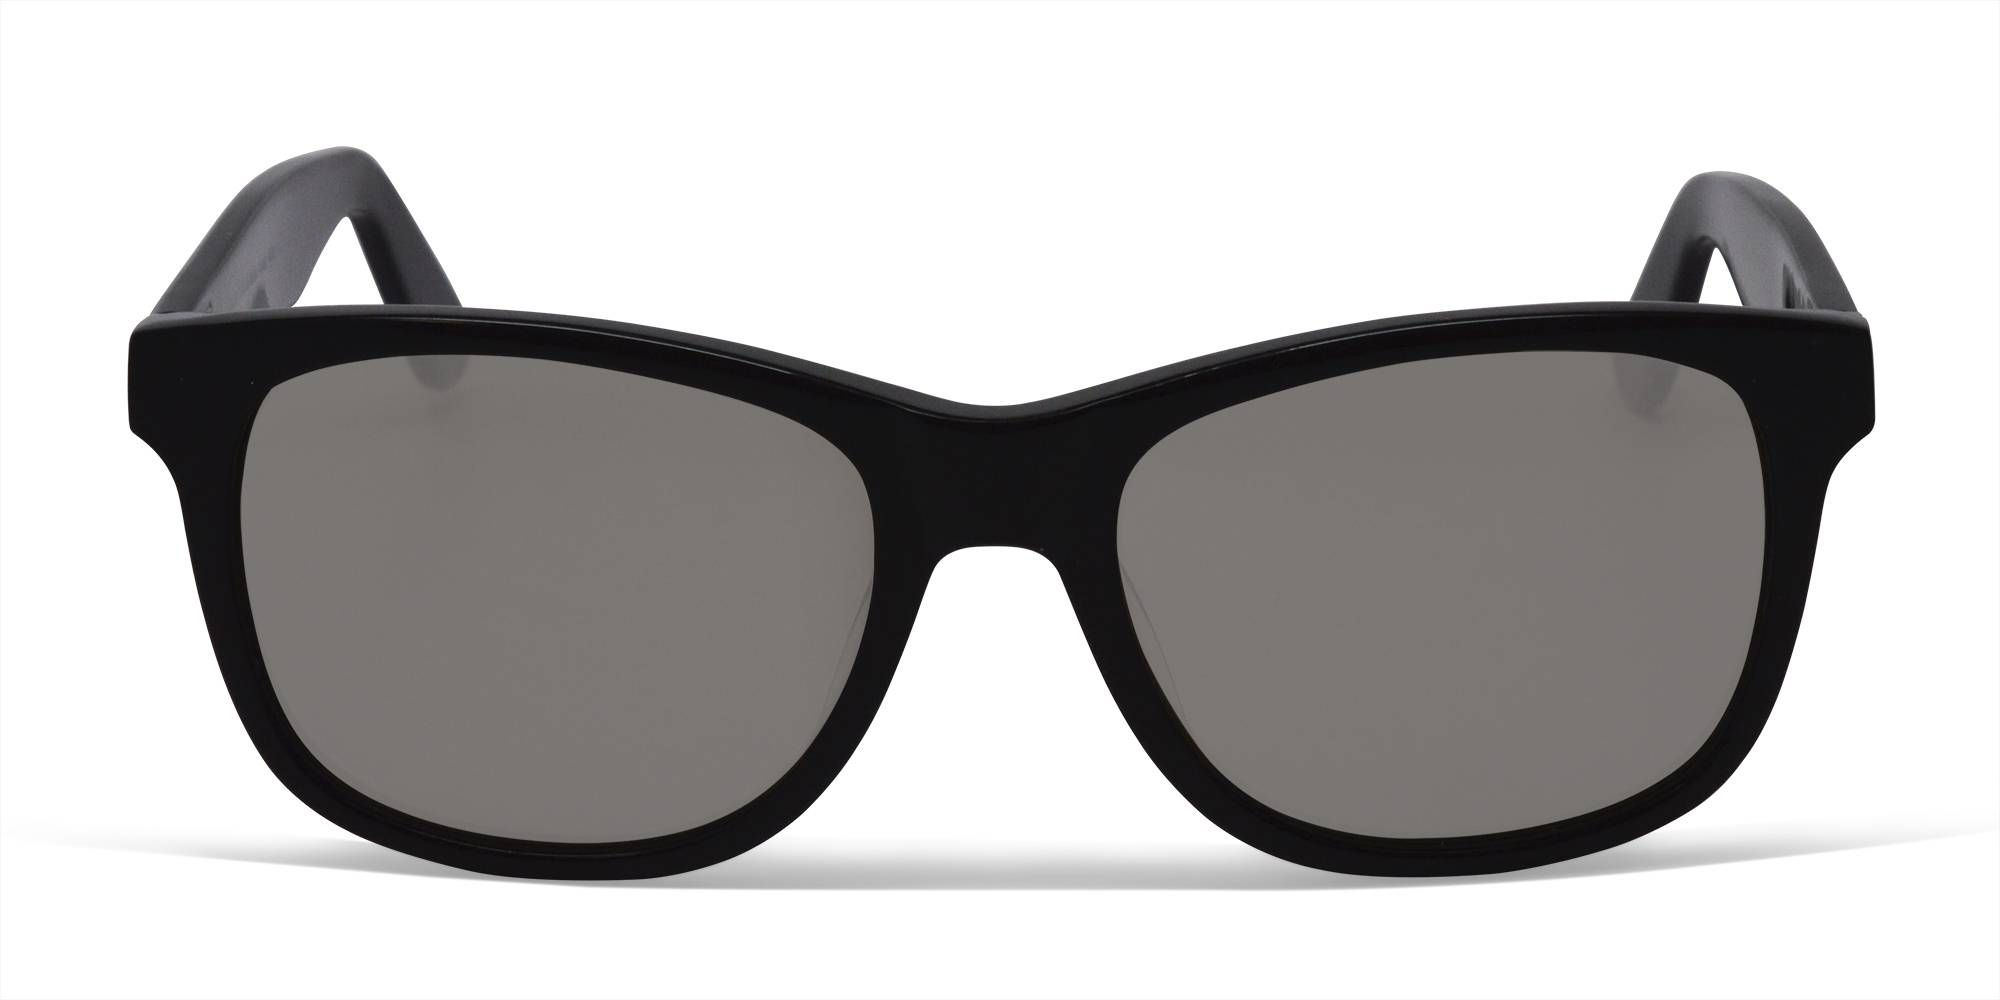 9a833c1b461 EnChroma glasses to correct color blindness.